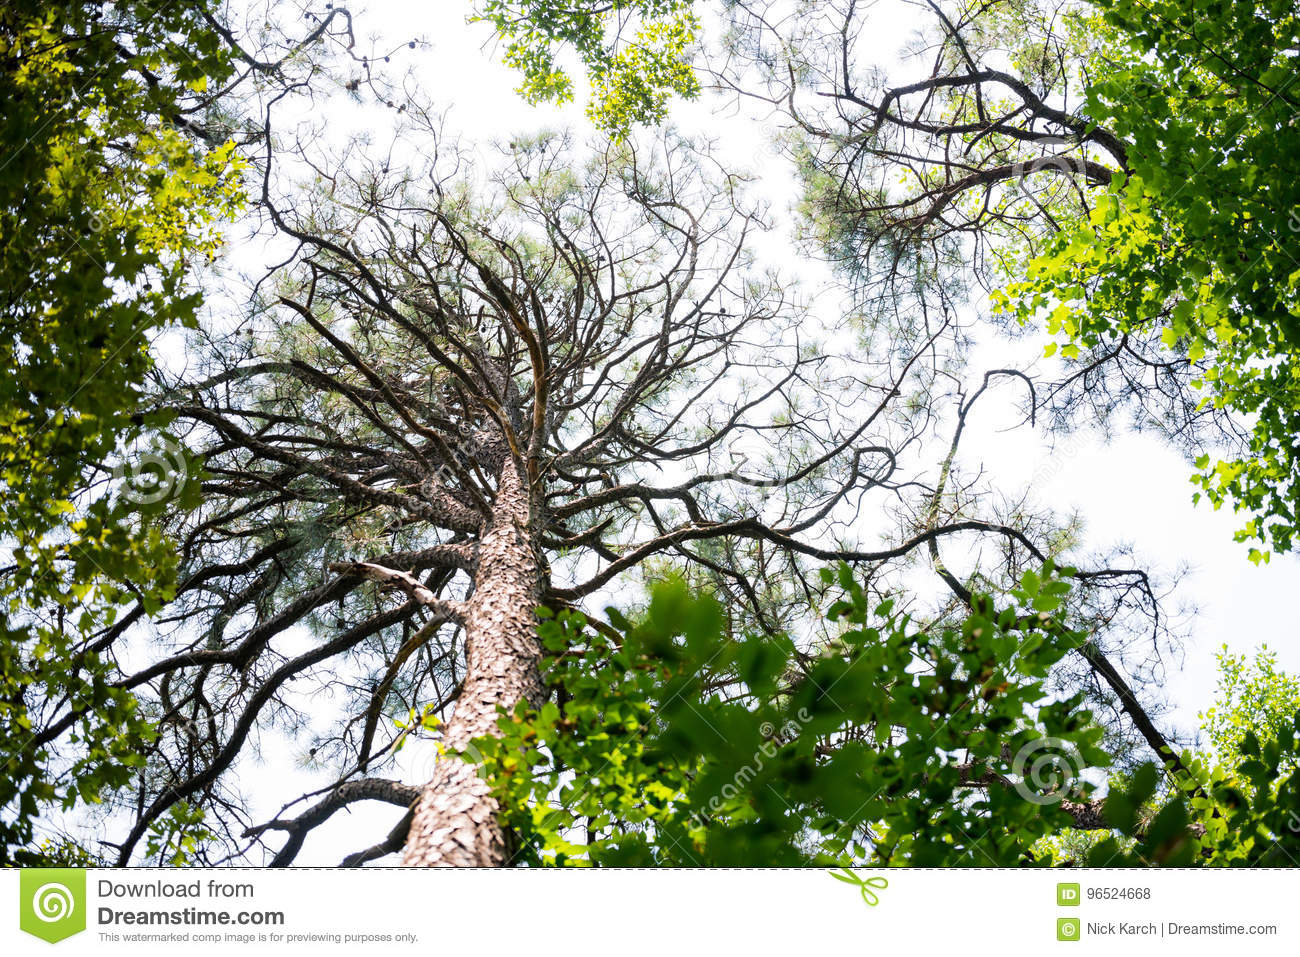 Tall branching tree